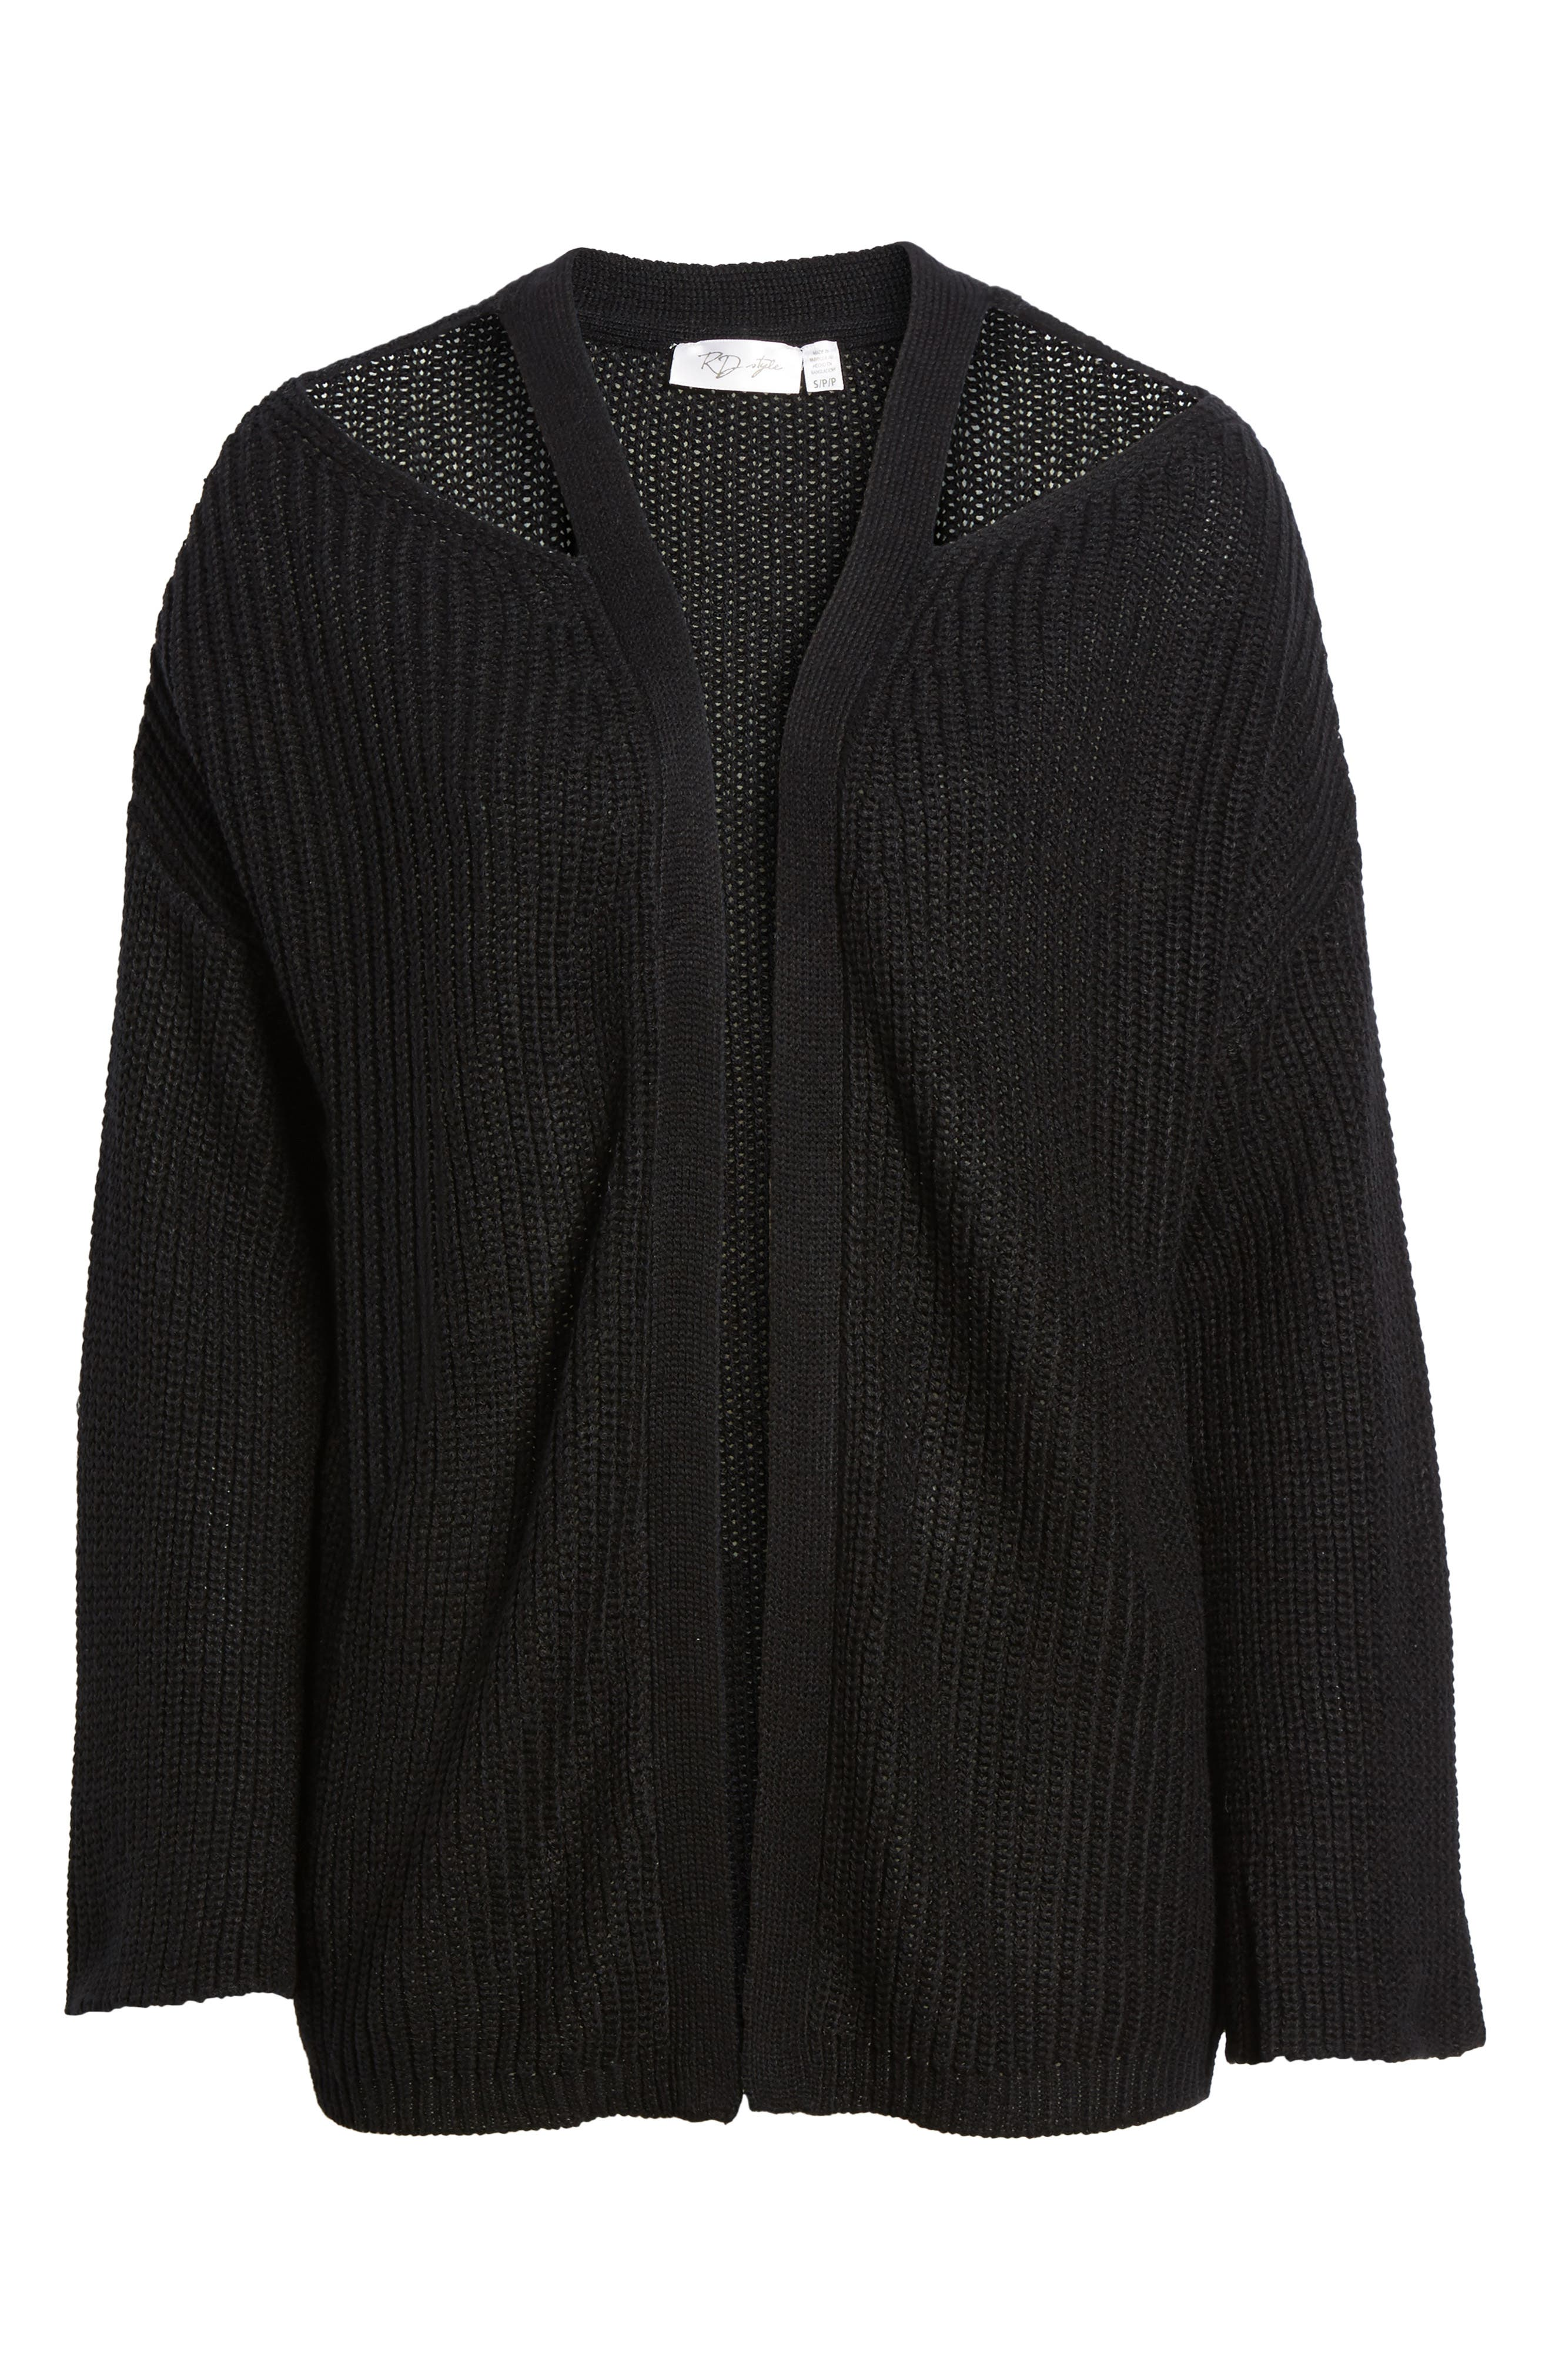 Cutout Cardigan,                             Alternate thumbnail 6, color,                             Black